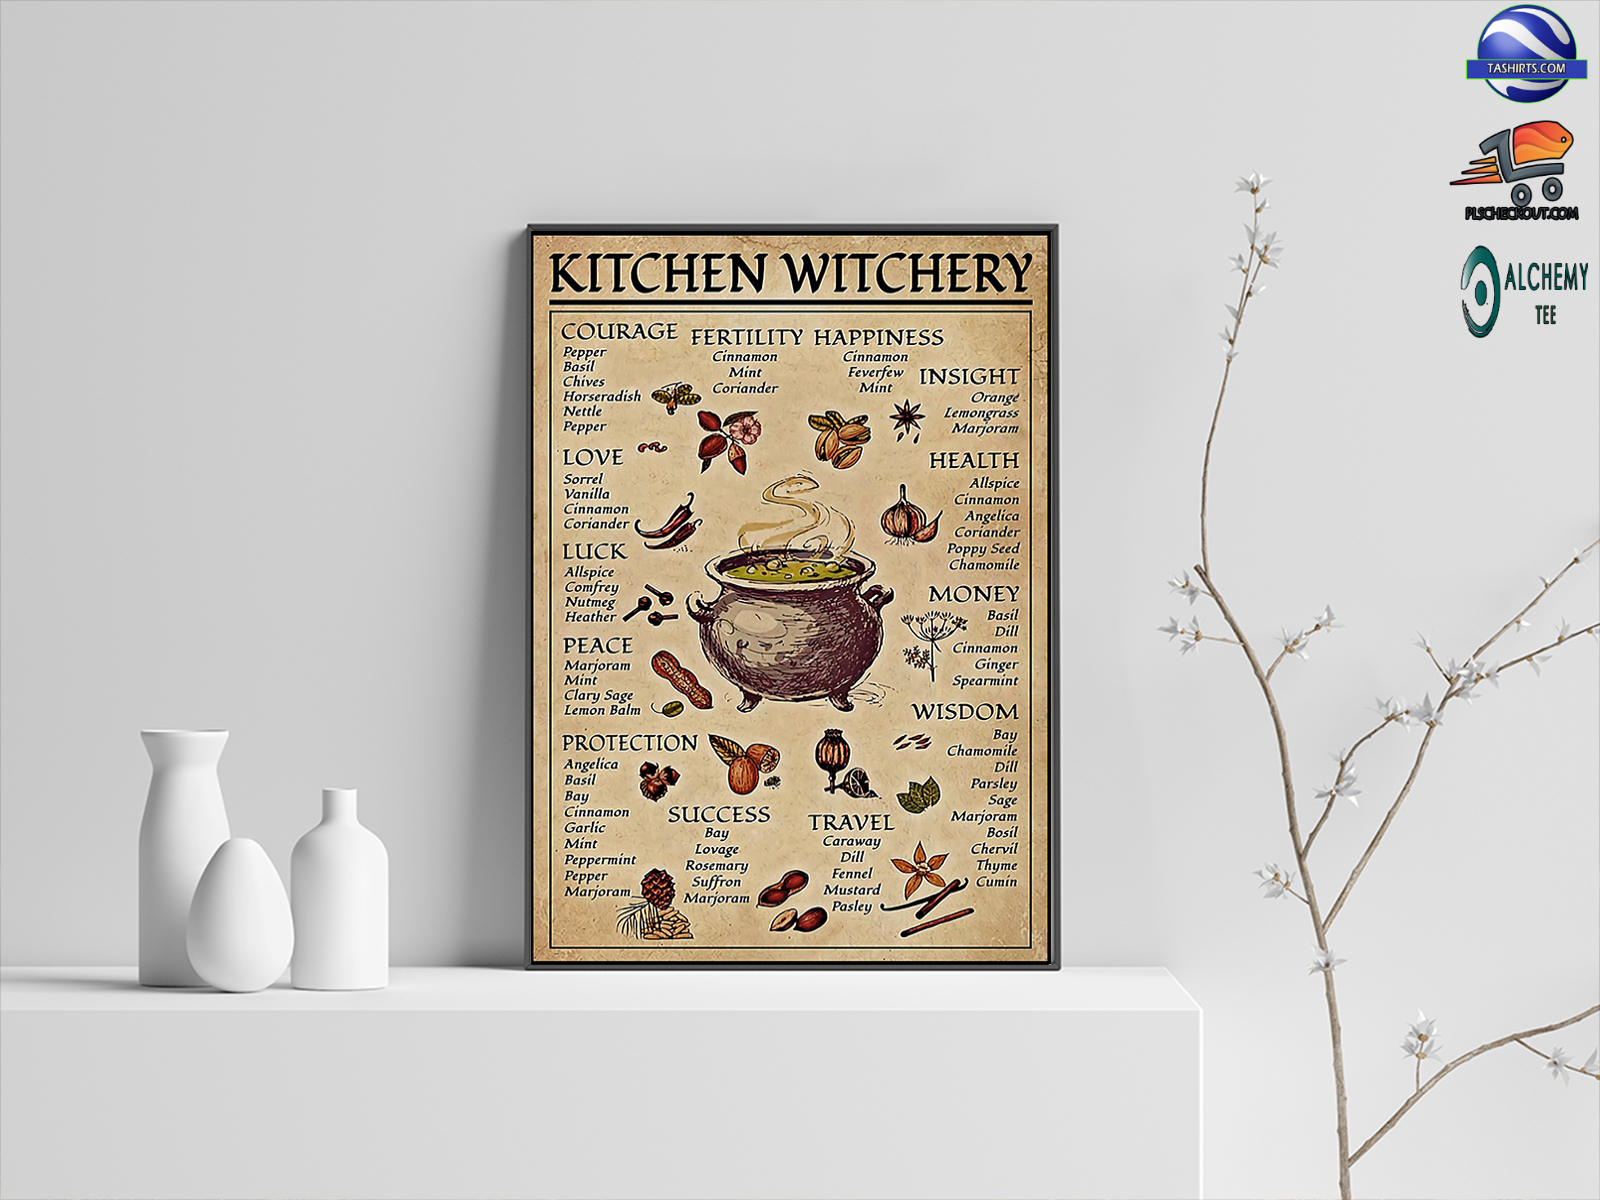 Kitchen witchery knowledge poster